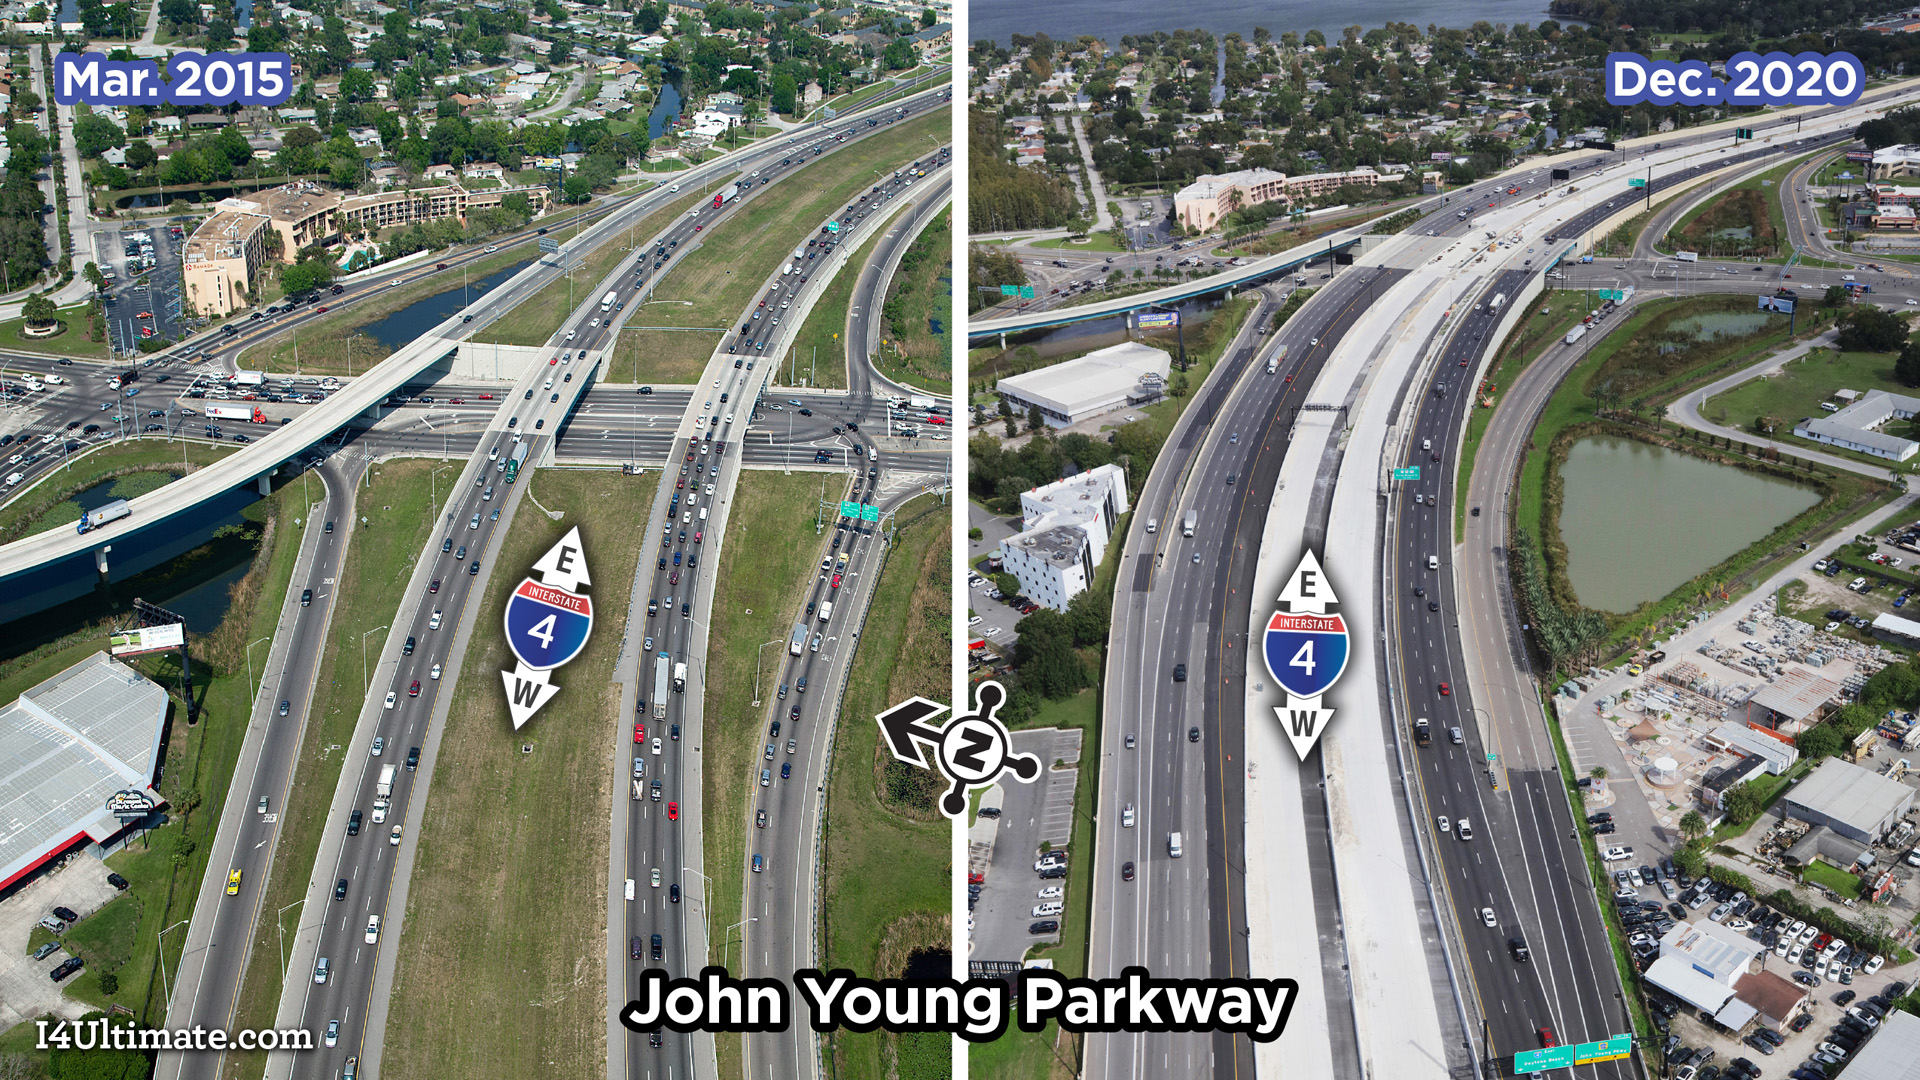 4738-I4Ultimate-GUL-campaign-images-20210212-06-John-Young-Parkway